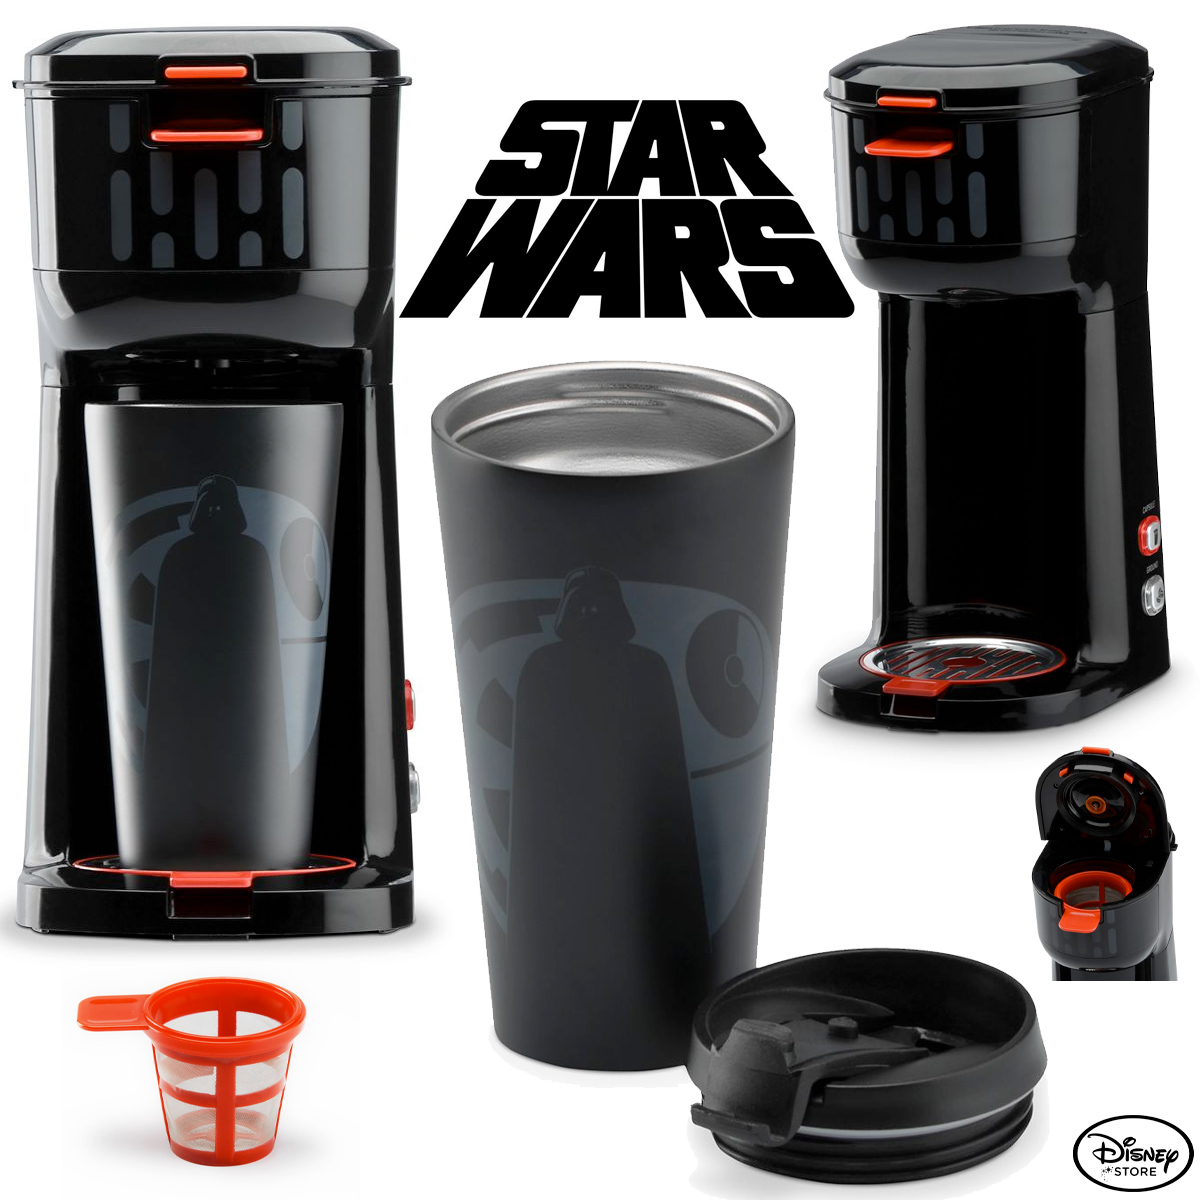 Cafeteira Star Wars Dual Brew Coffee Maker